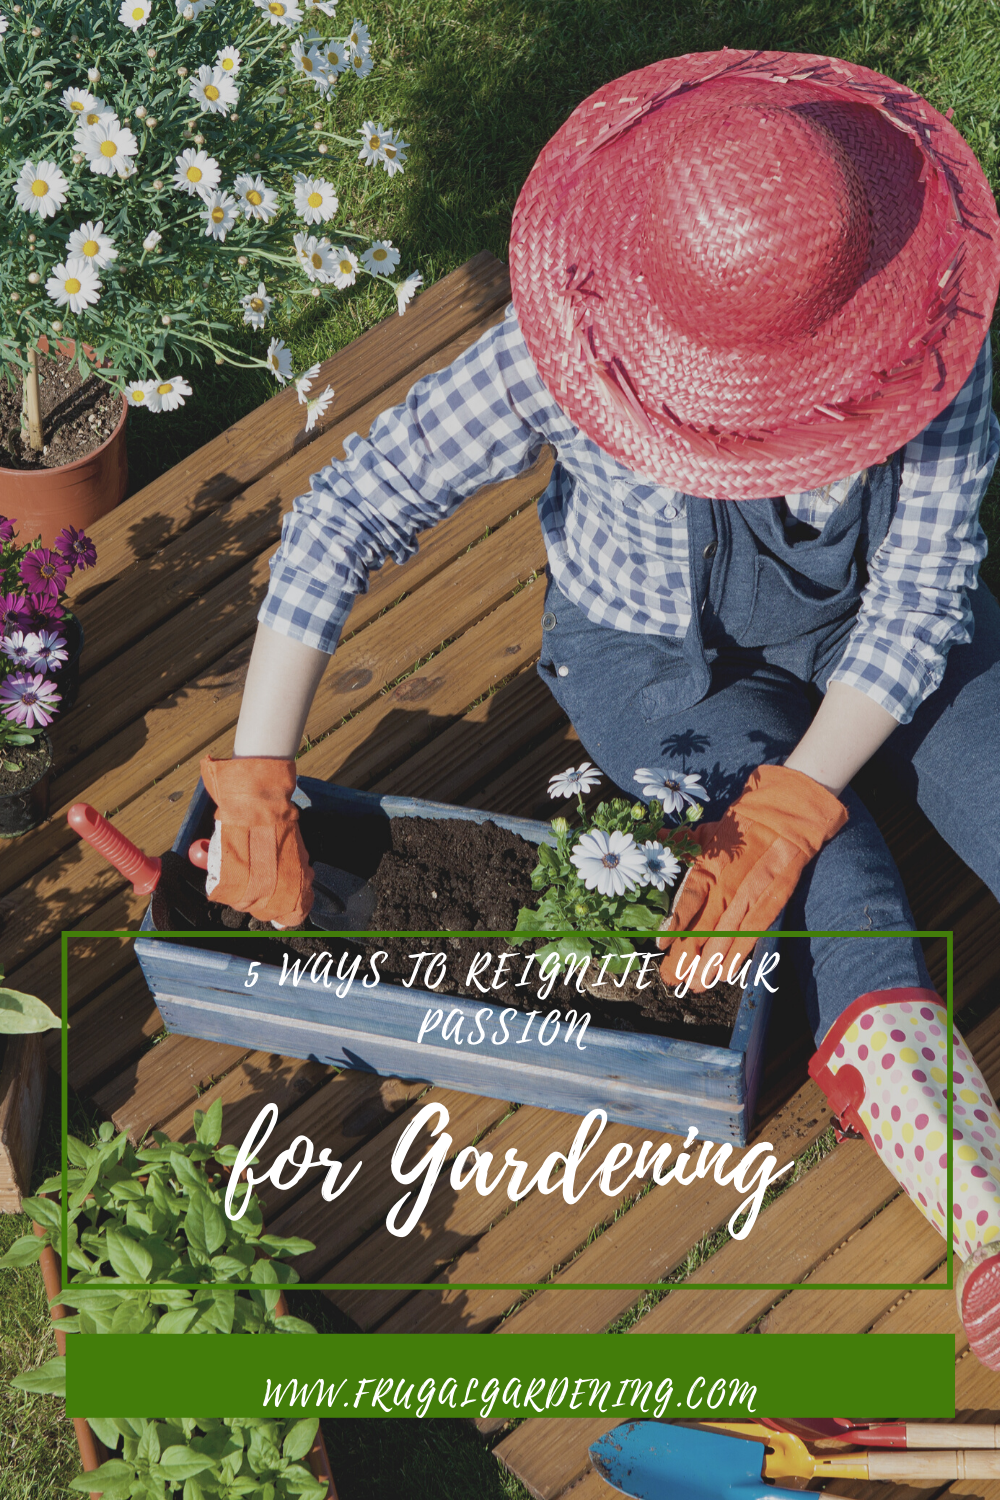 5 Ways to Reignite Your Passion for Gardening